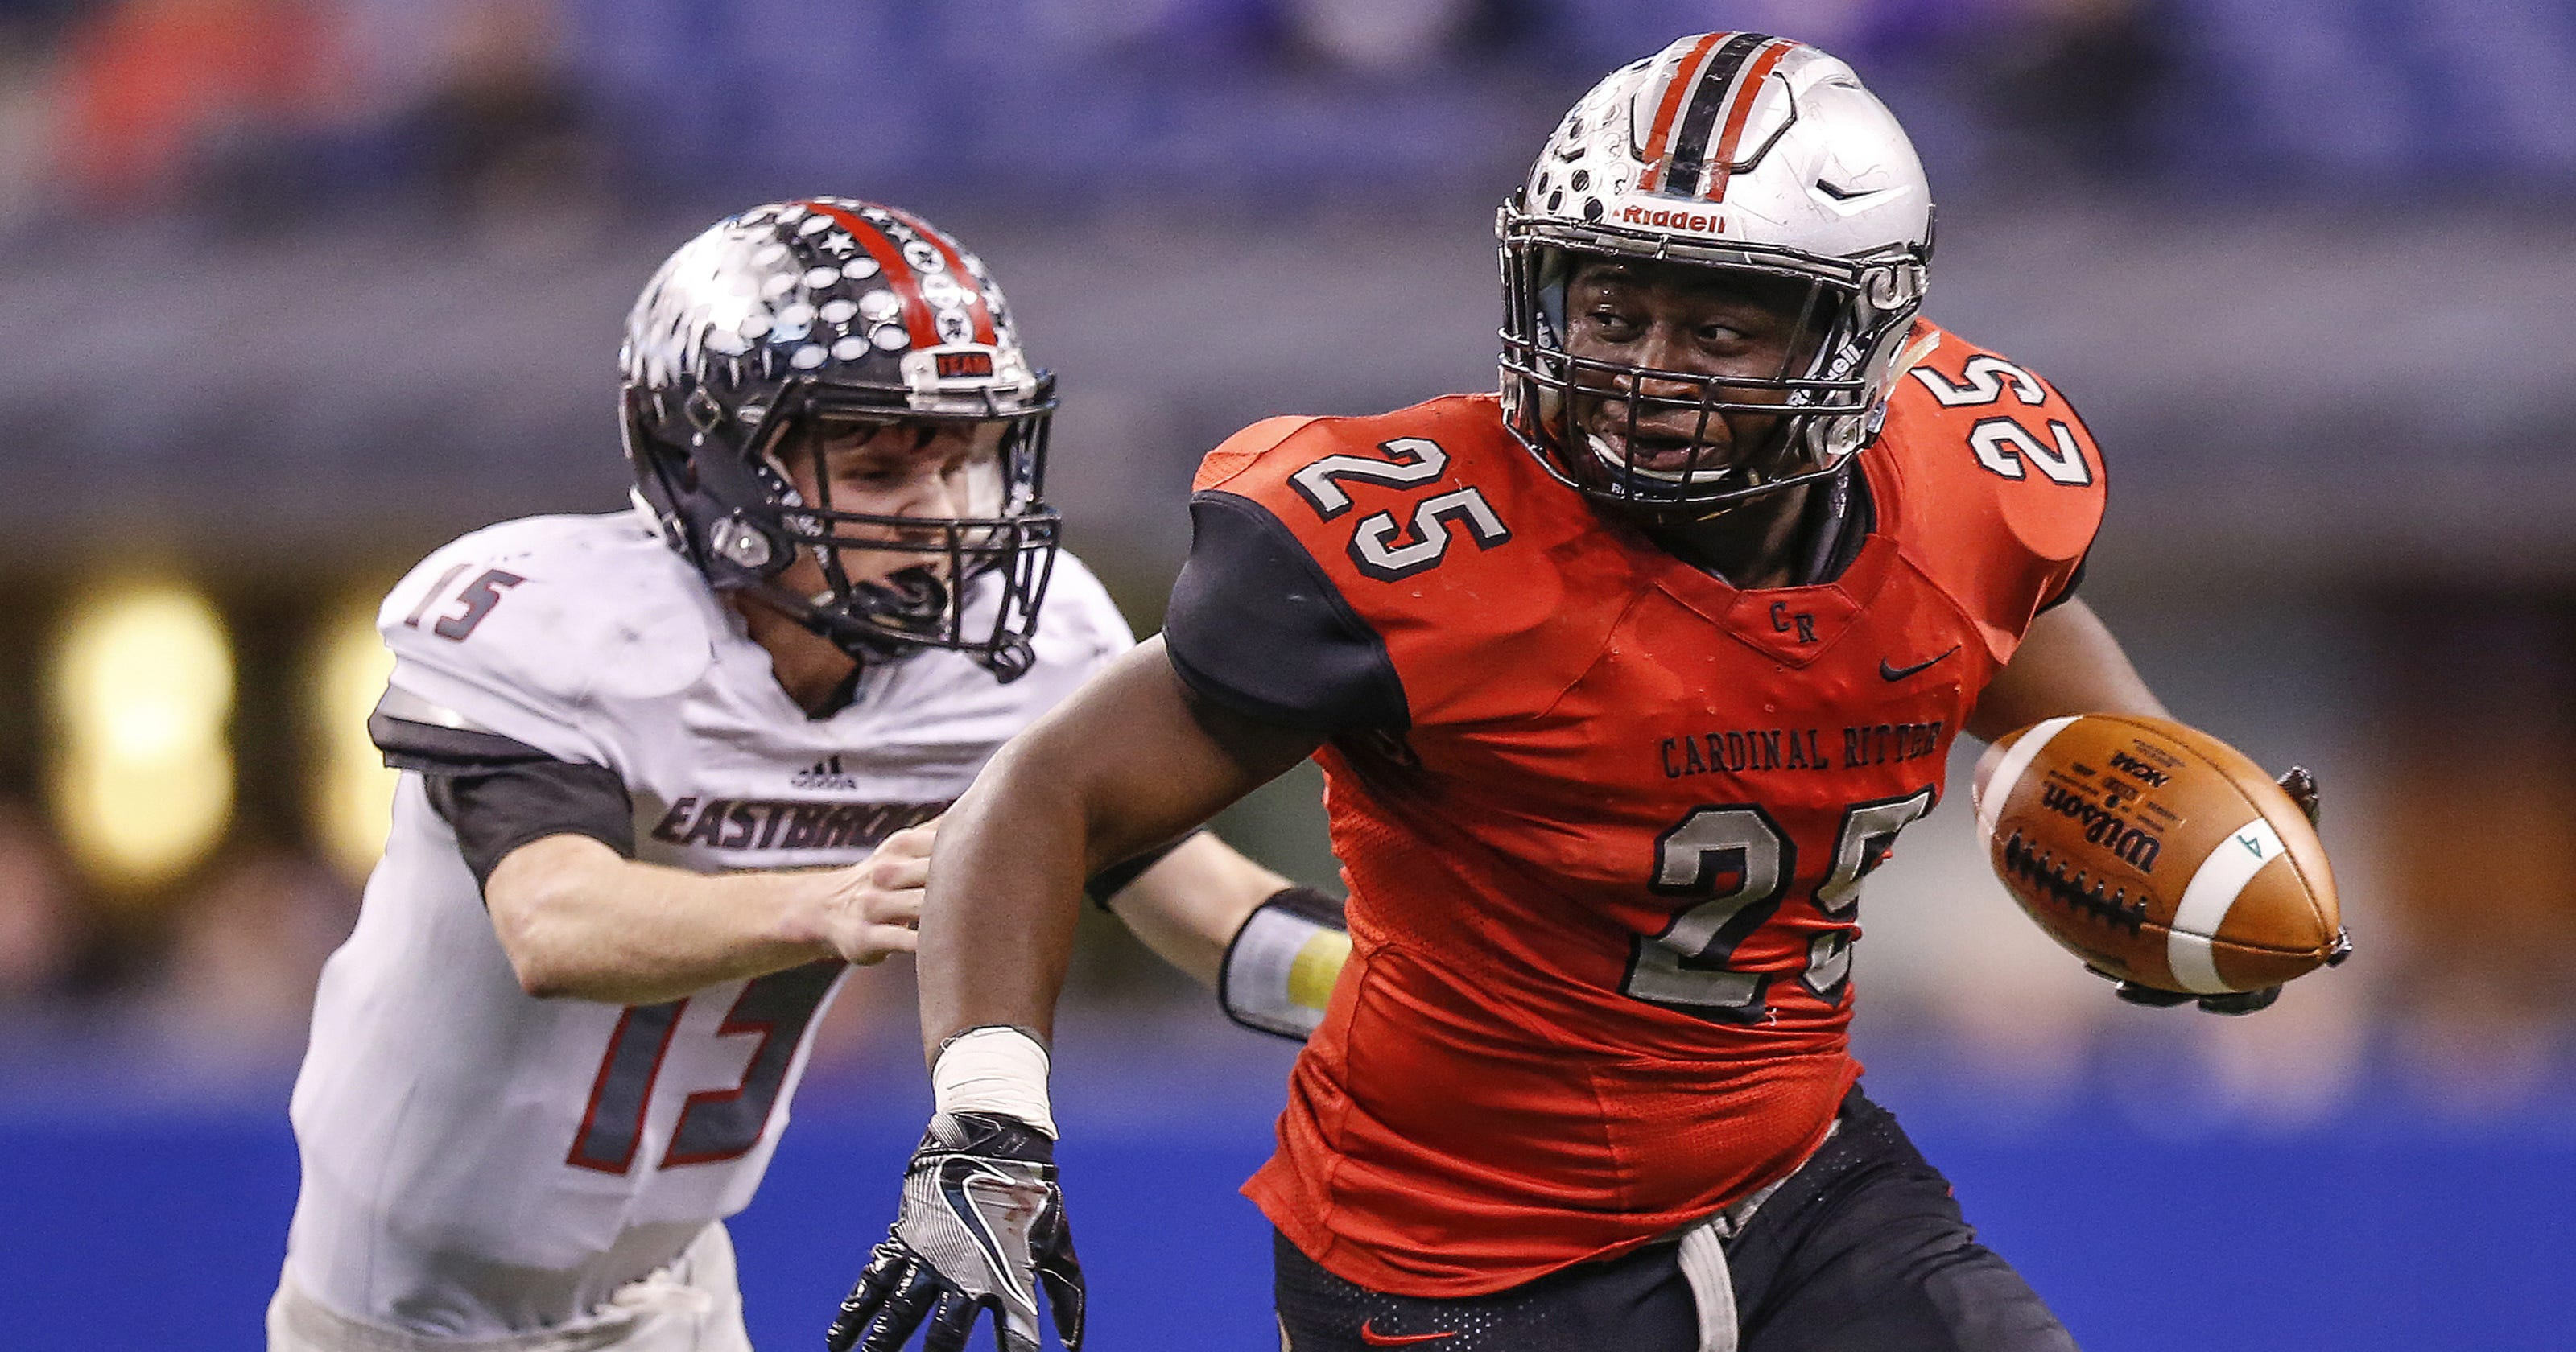 Indiana high school football All-State teams